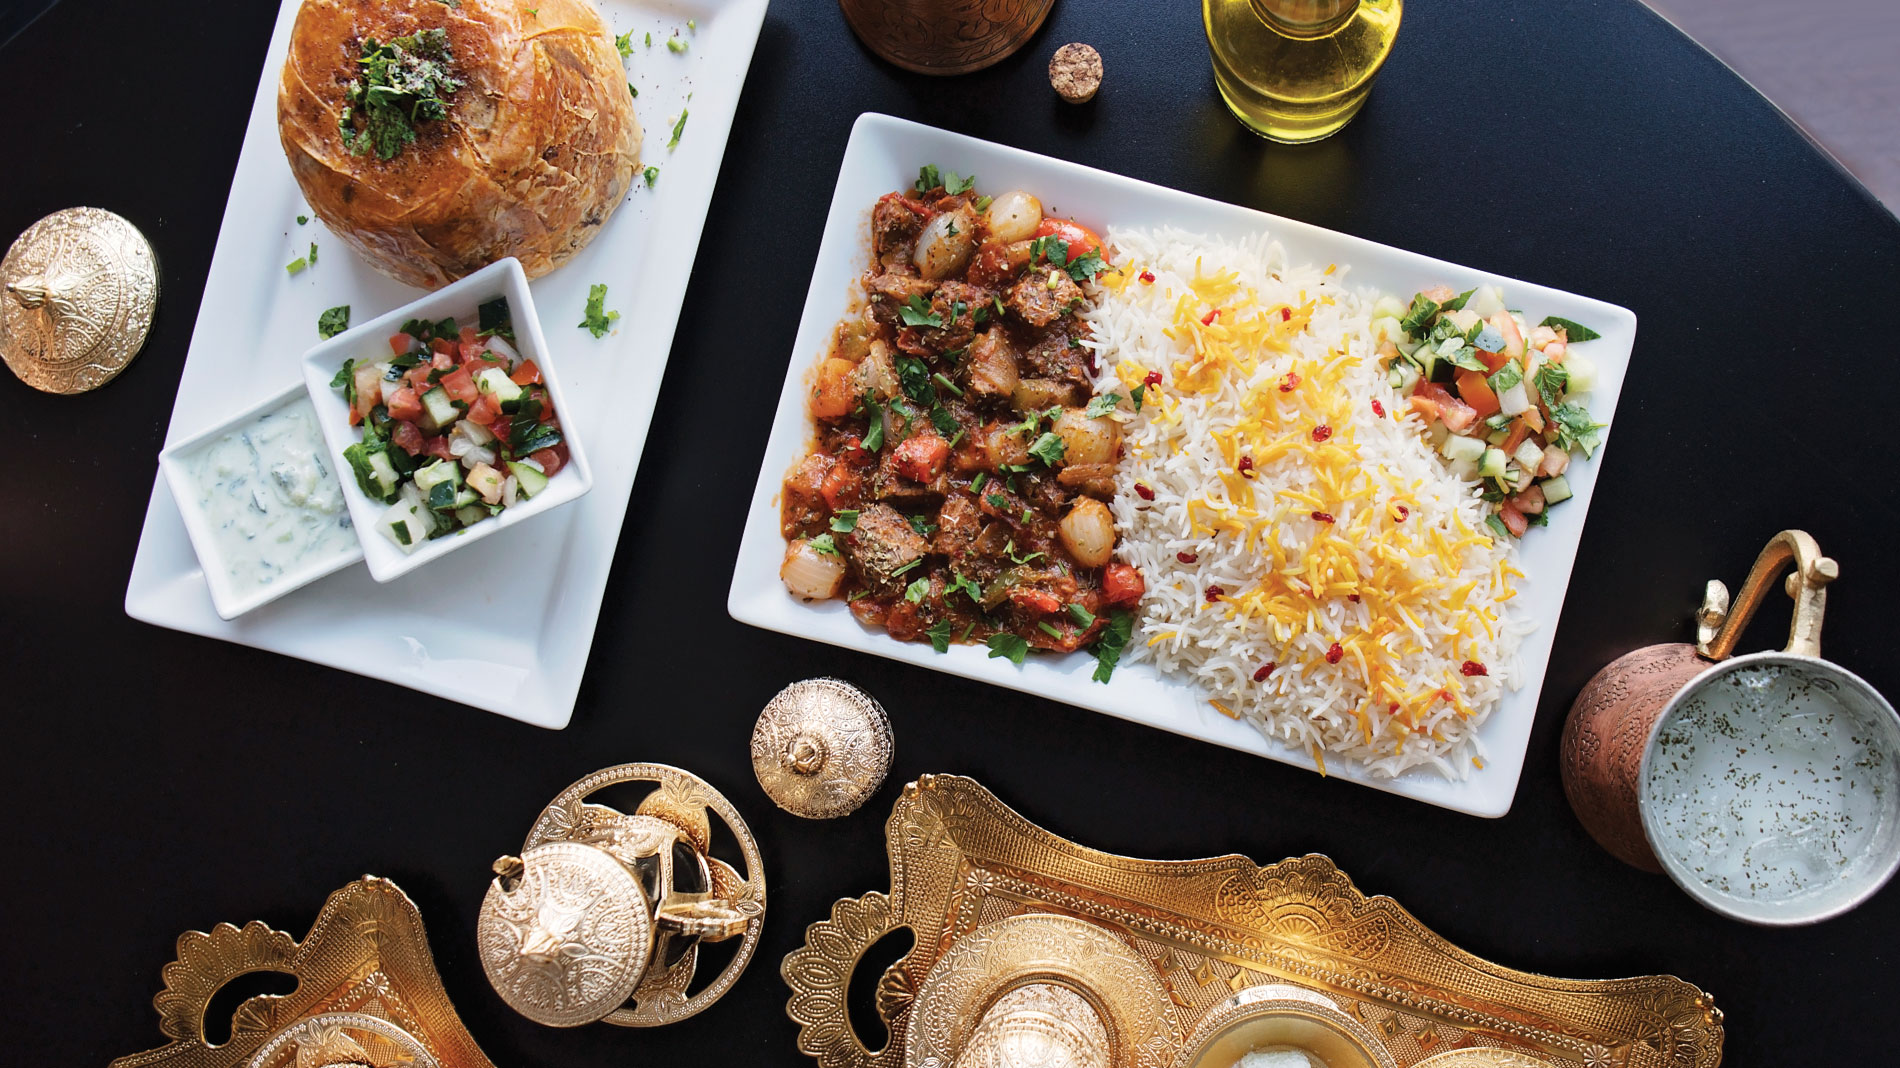 middle eastern dishes and a brass turkish coffee service on a table with a black table cloth